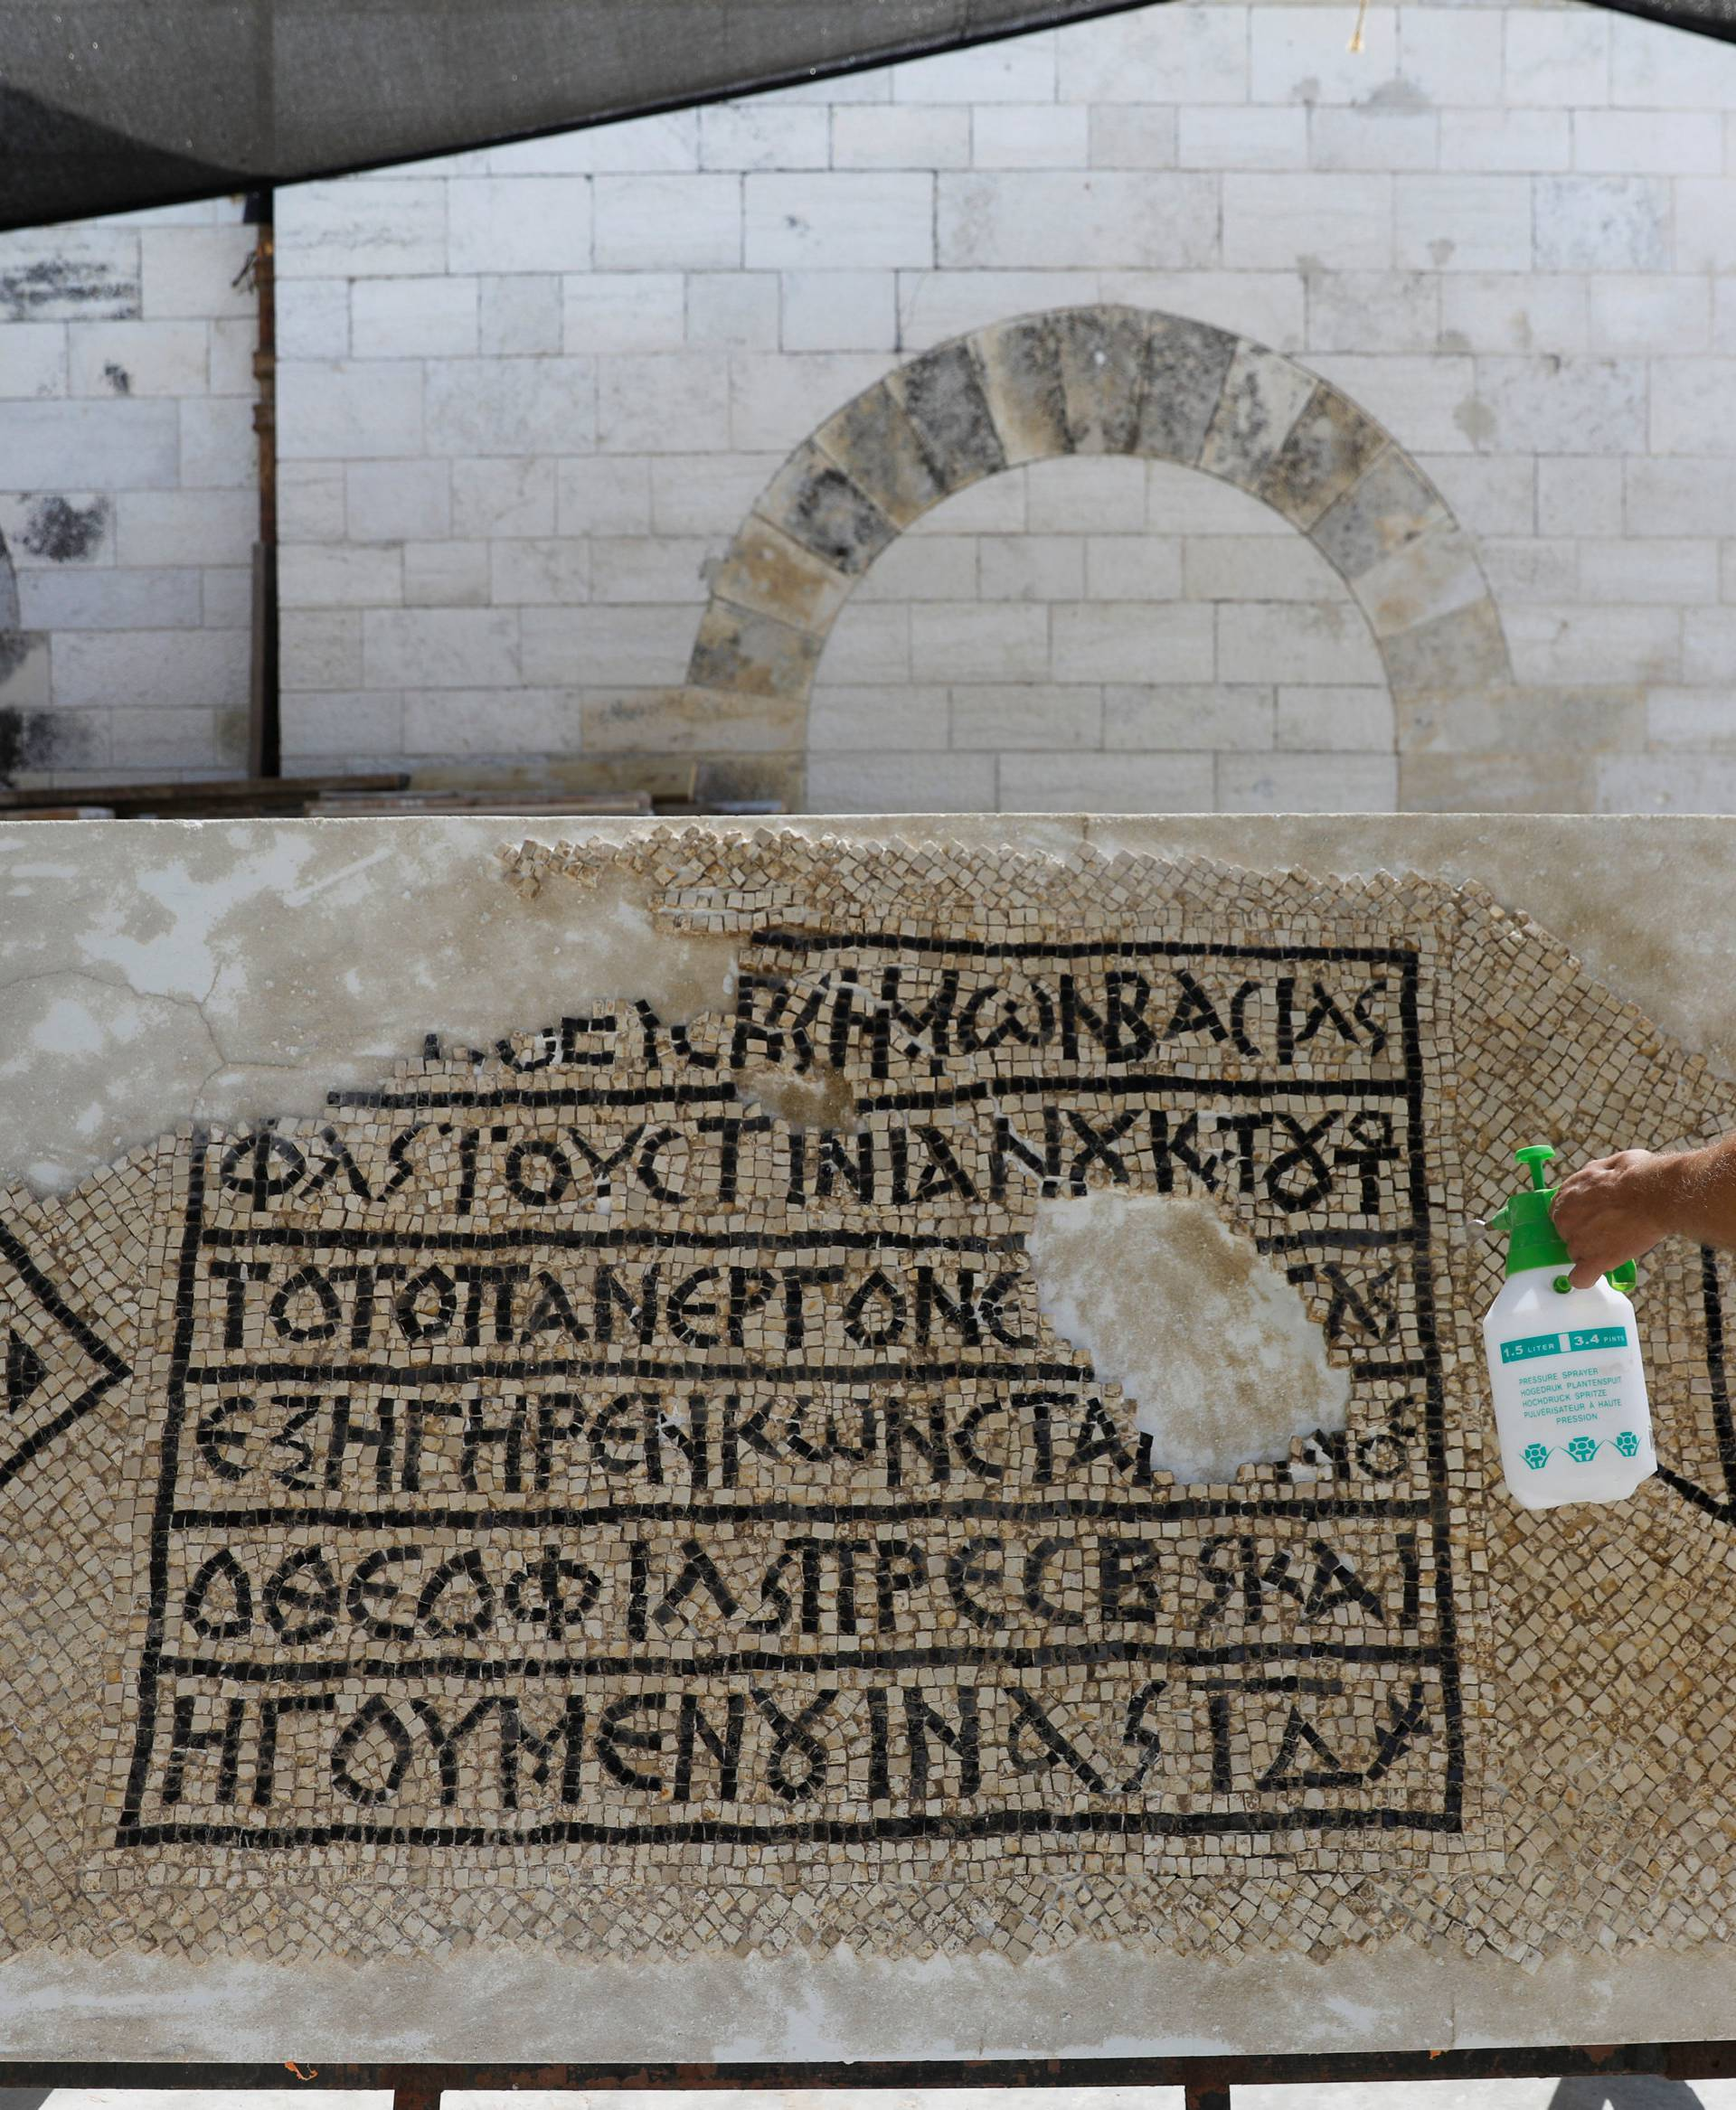 A conservationist works on a 1500-year-old mosaic floor bearing a Greek writing, discovered near Damascus Gate in Jerusalem's Old City, as it is displayed at the Rockefeller Museum in Jerusalem